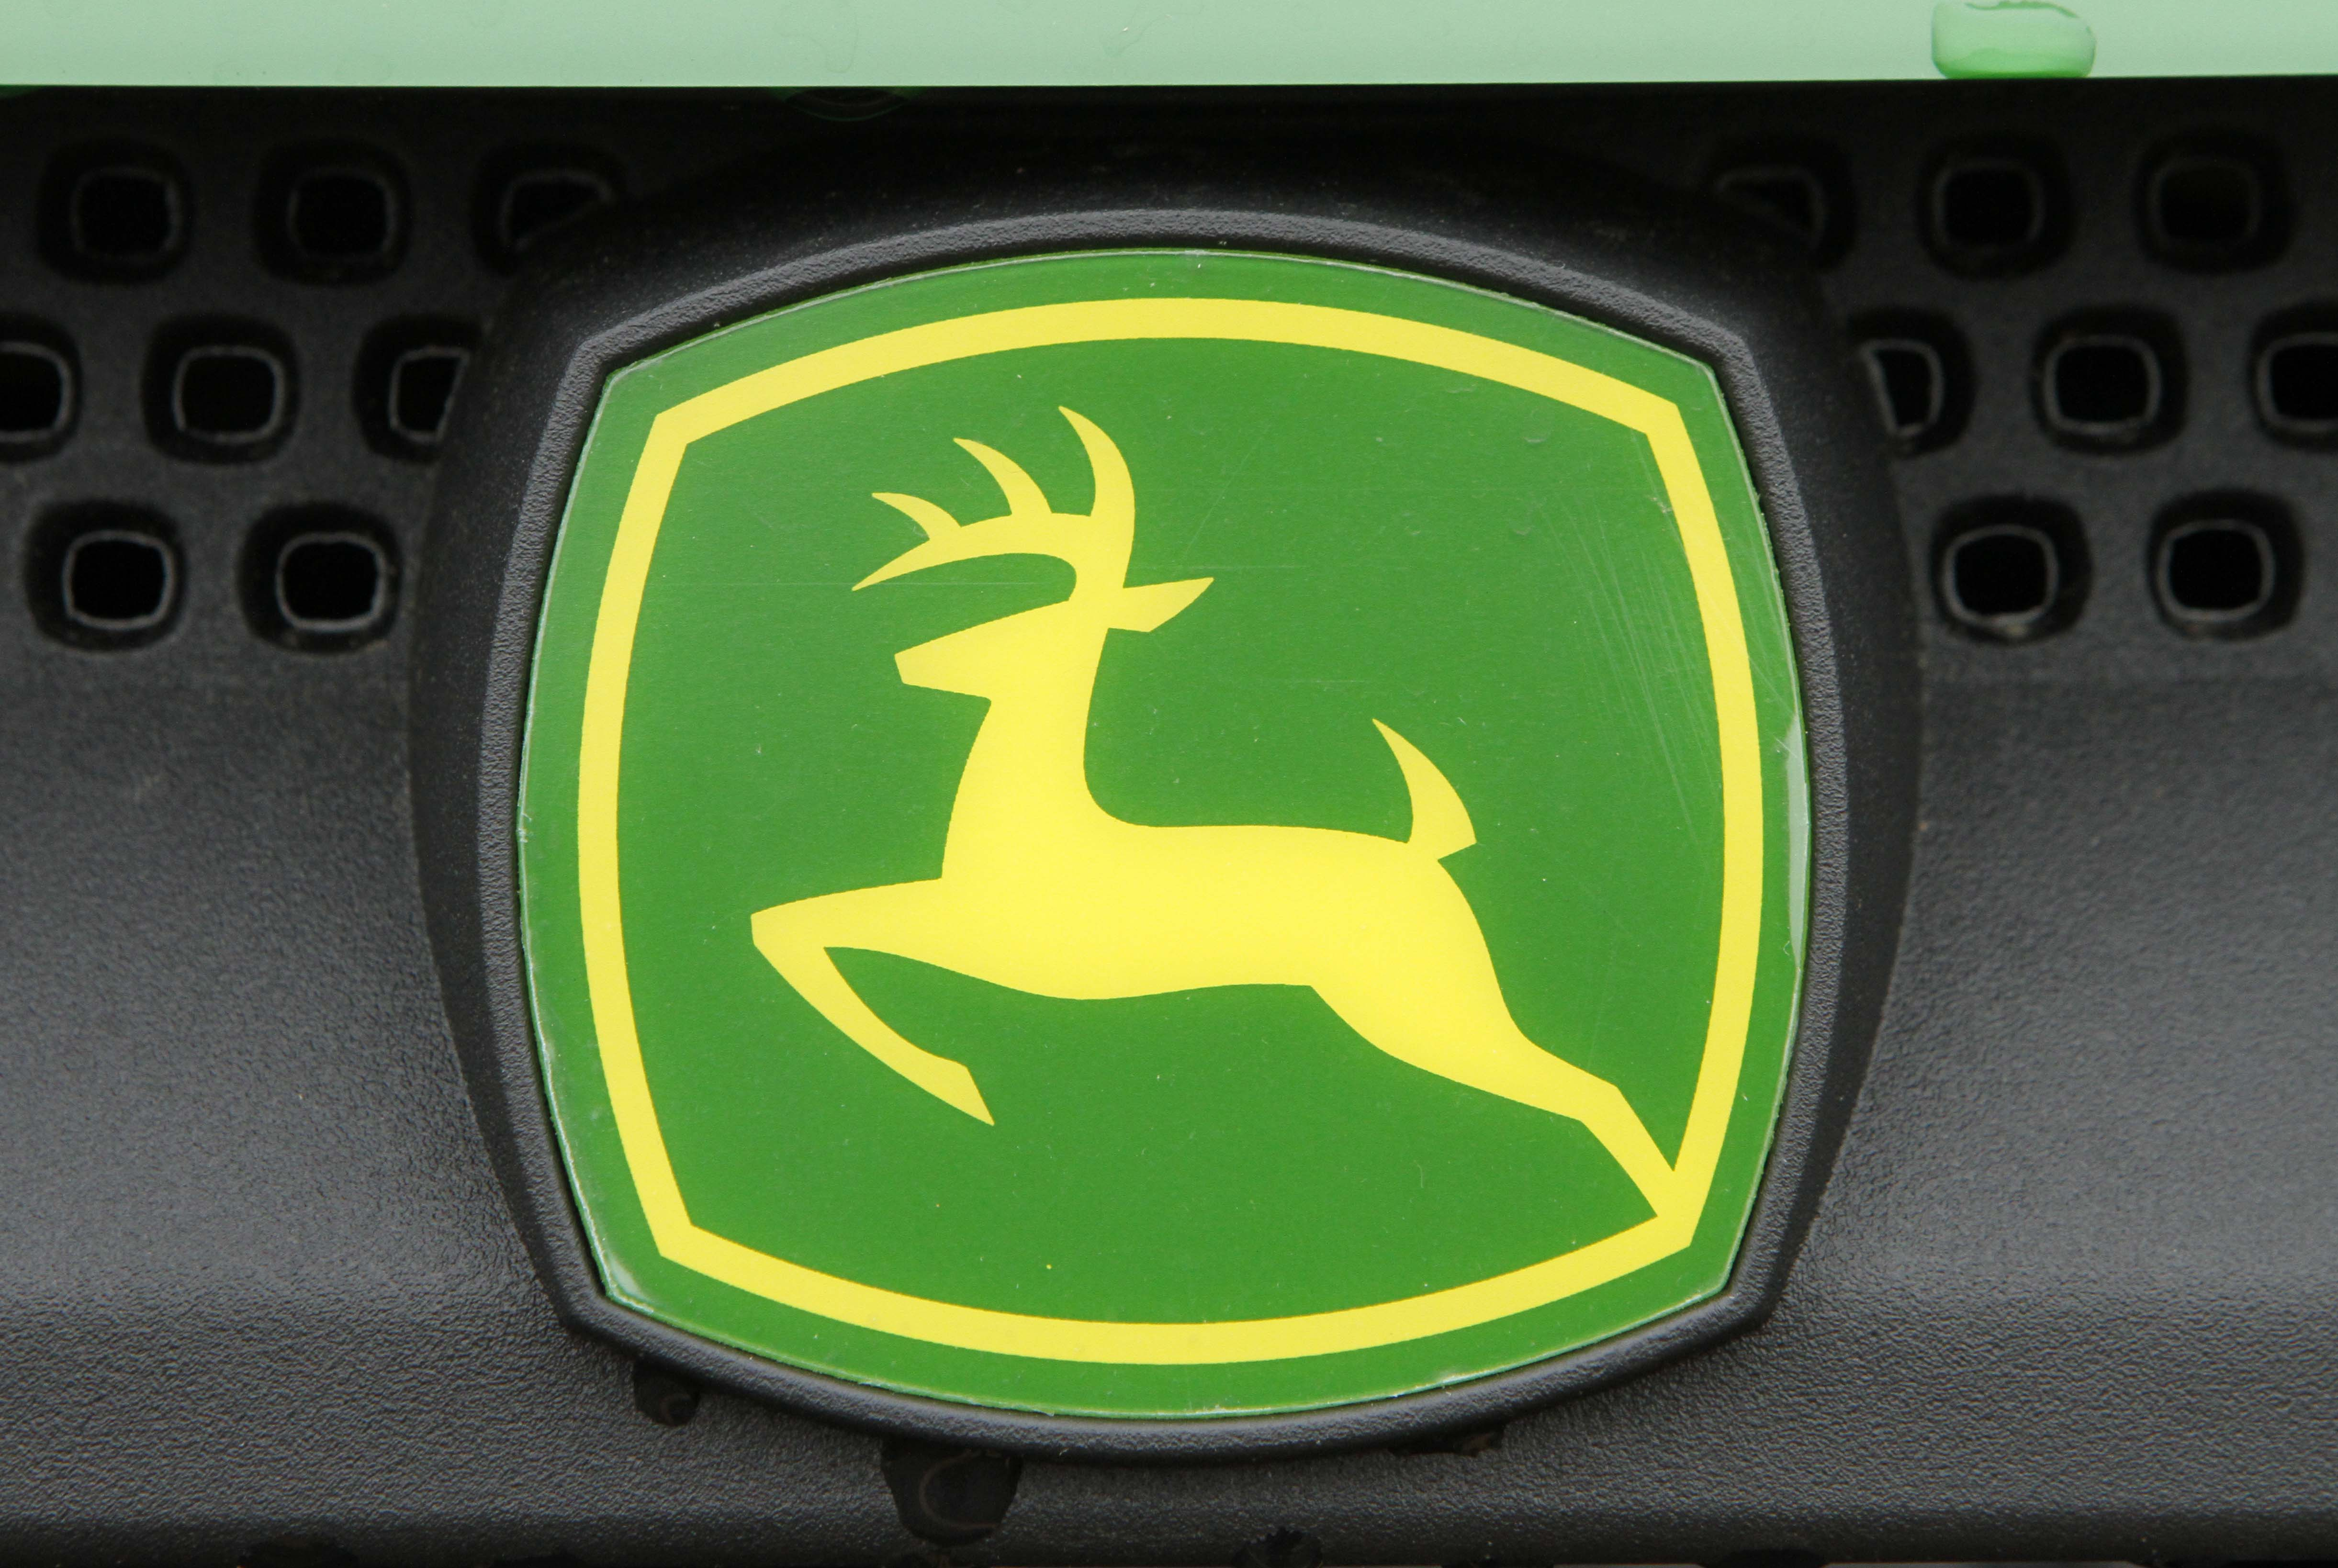 John Deere Logo Wallpaper 2015